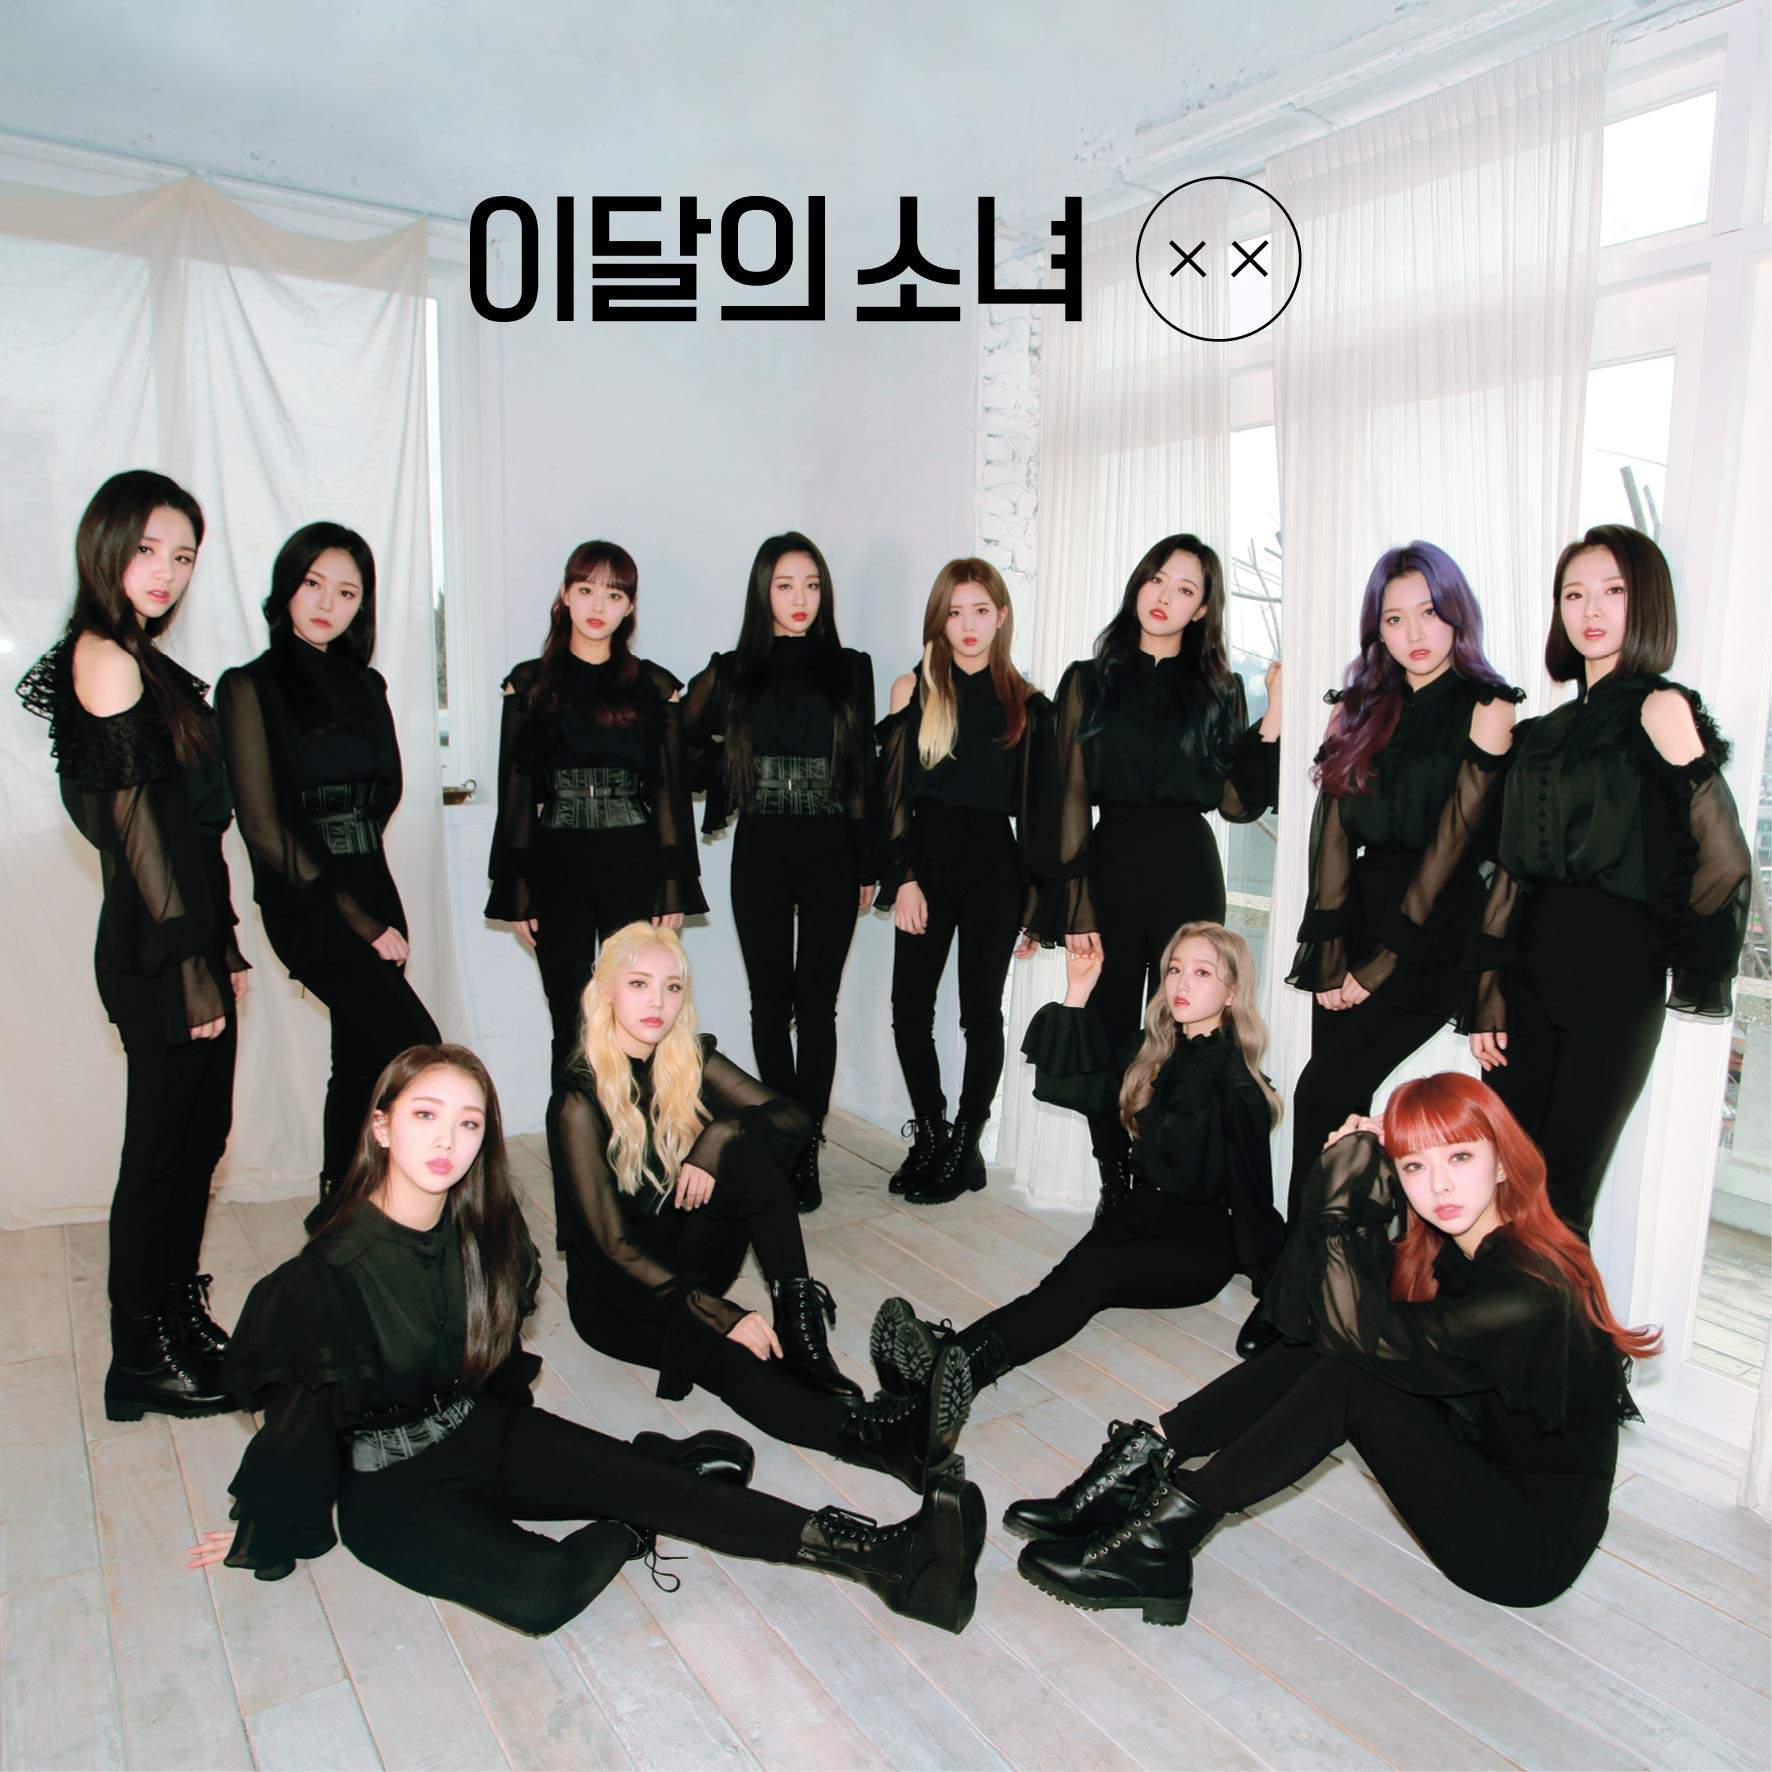 Monthly Girl LOONA - X X (Debut Mini Repackage) [Normal A ver.] CD+Booklet+1Photocard+Folded Poster+Double Side Extra Photocards Set